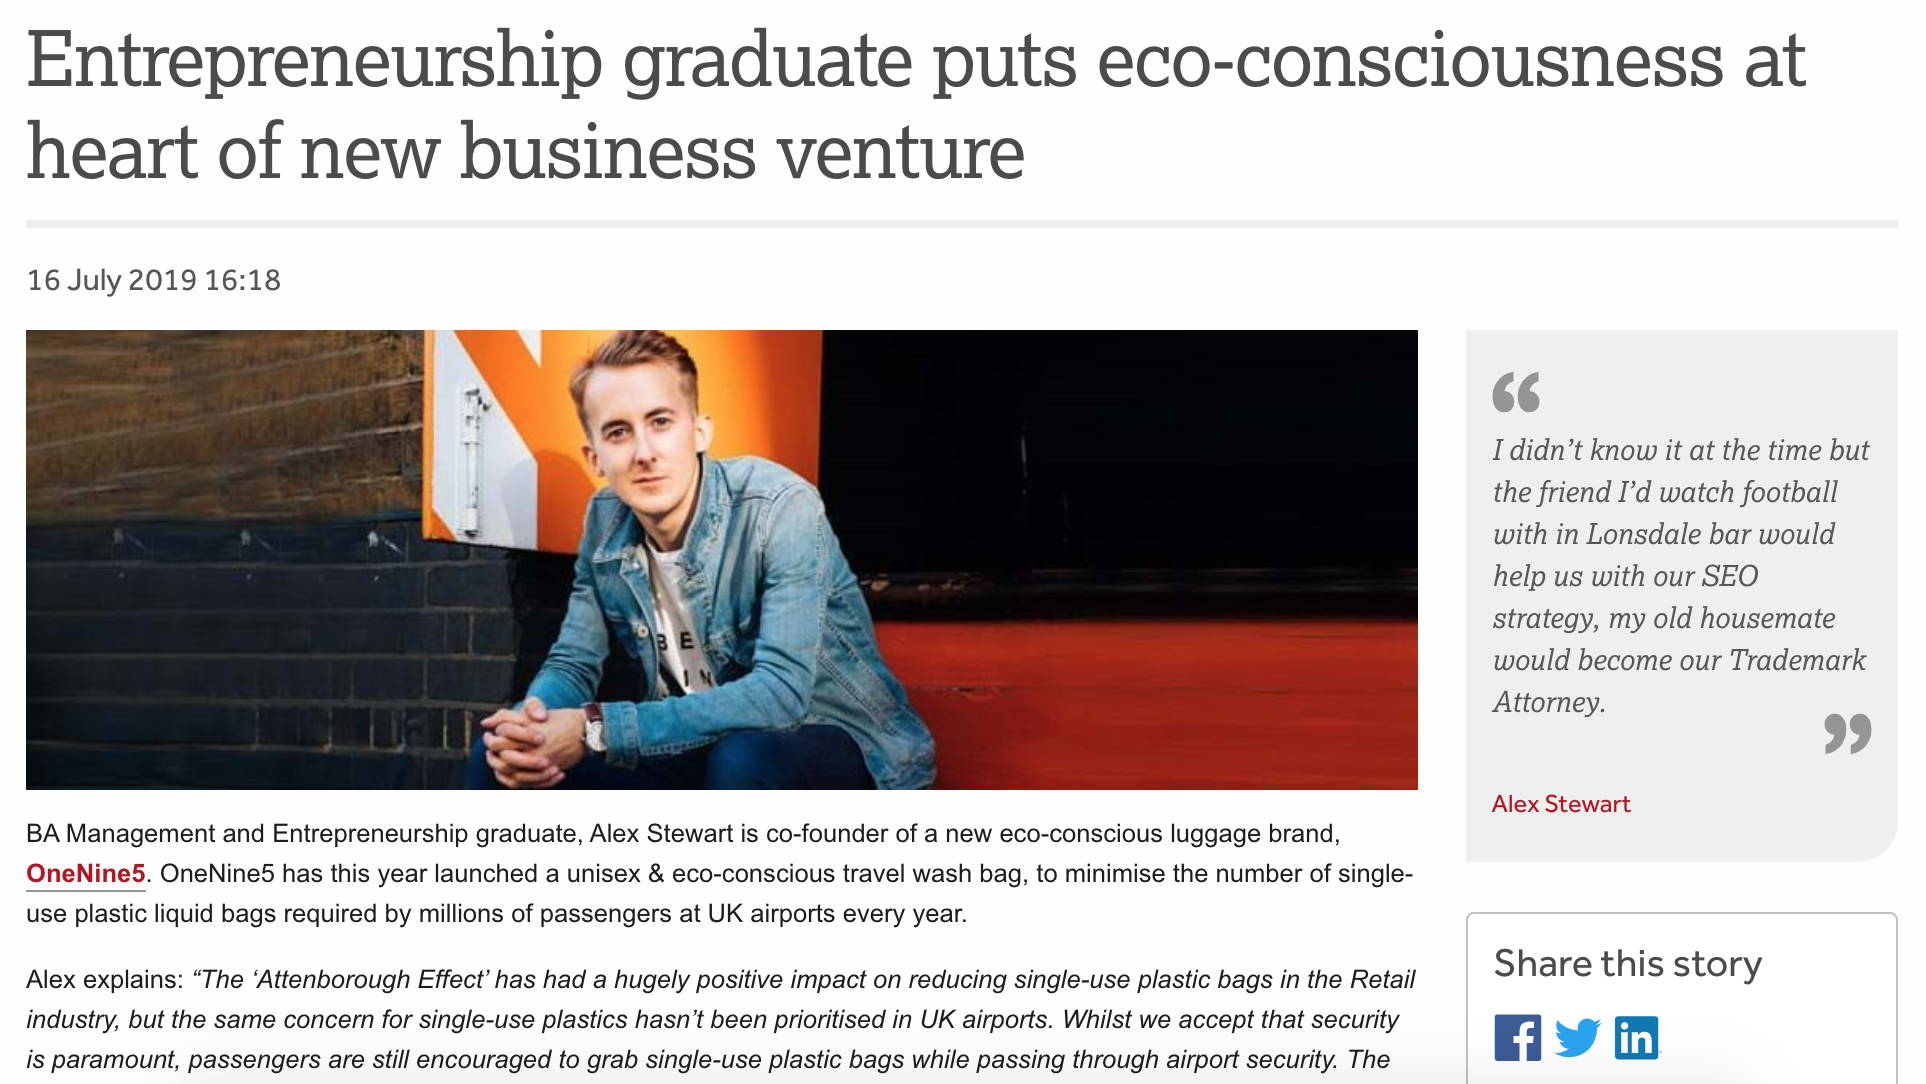 Entrepreneurship graduate puts eco-consciousness at the heart of new business venture